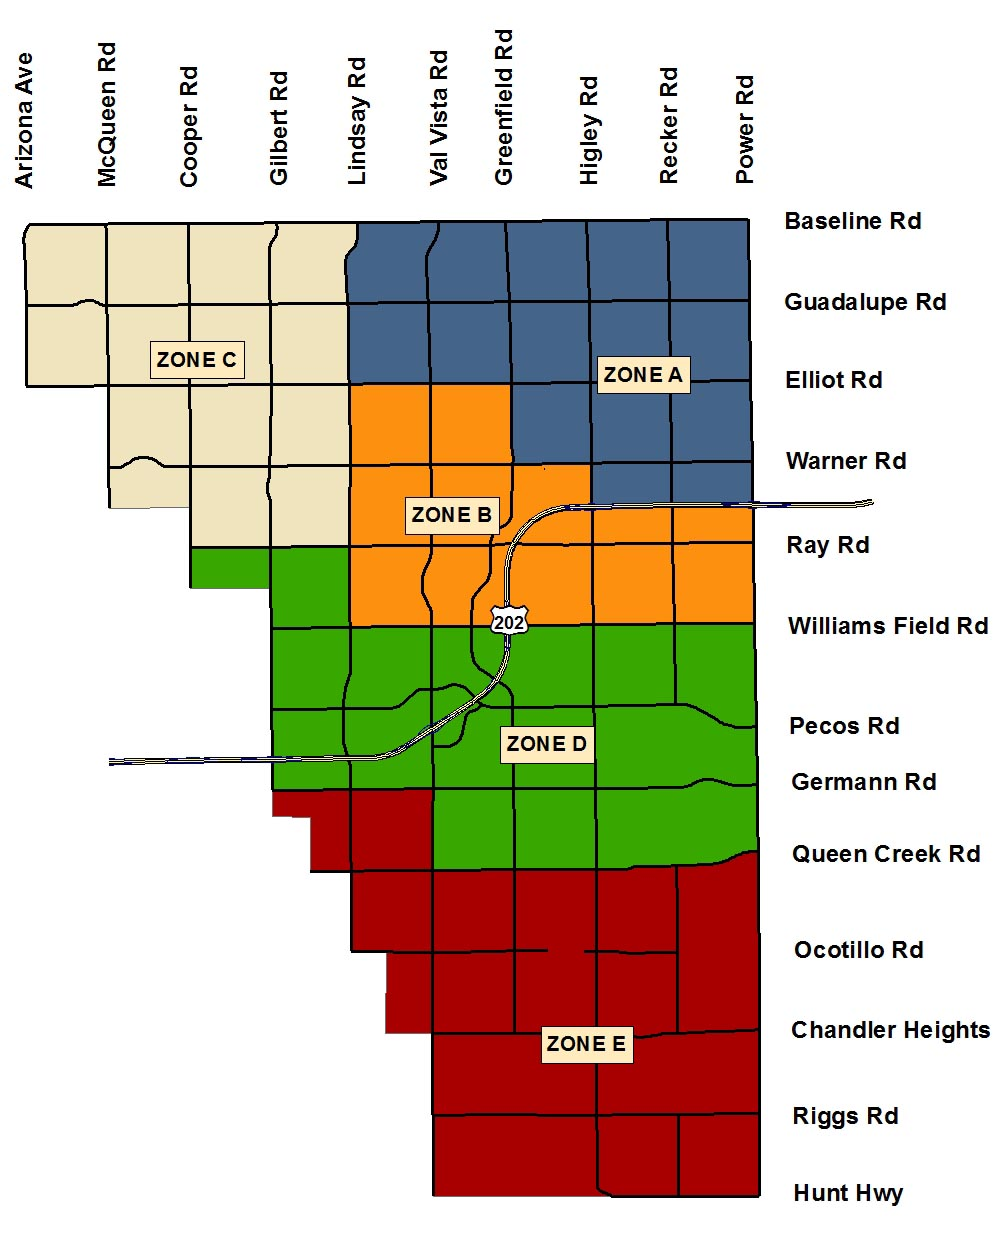 Trash, Recycle and Bulk Pickup Schedules | Town of Gilbert